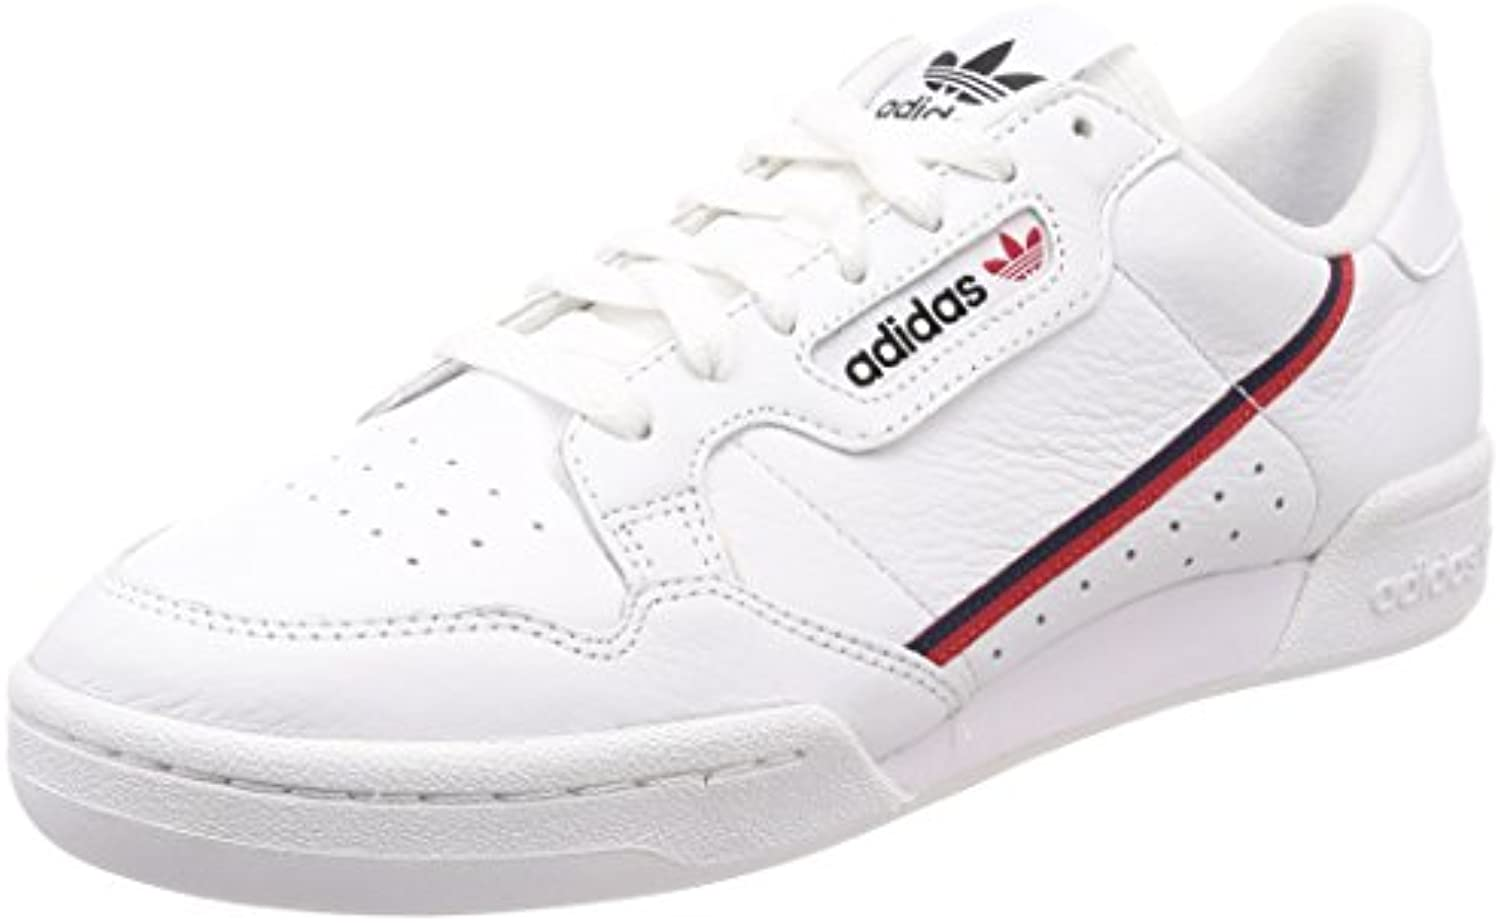 adidas Originals Continental 80 Sneaker B41674 White/Scarlet Gr. 36 UK 3 5